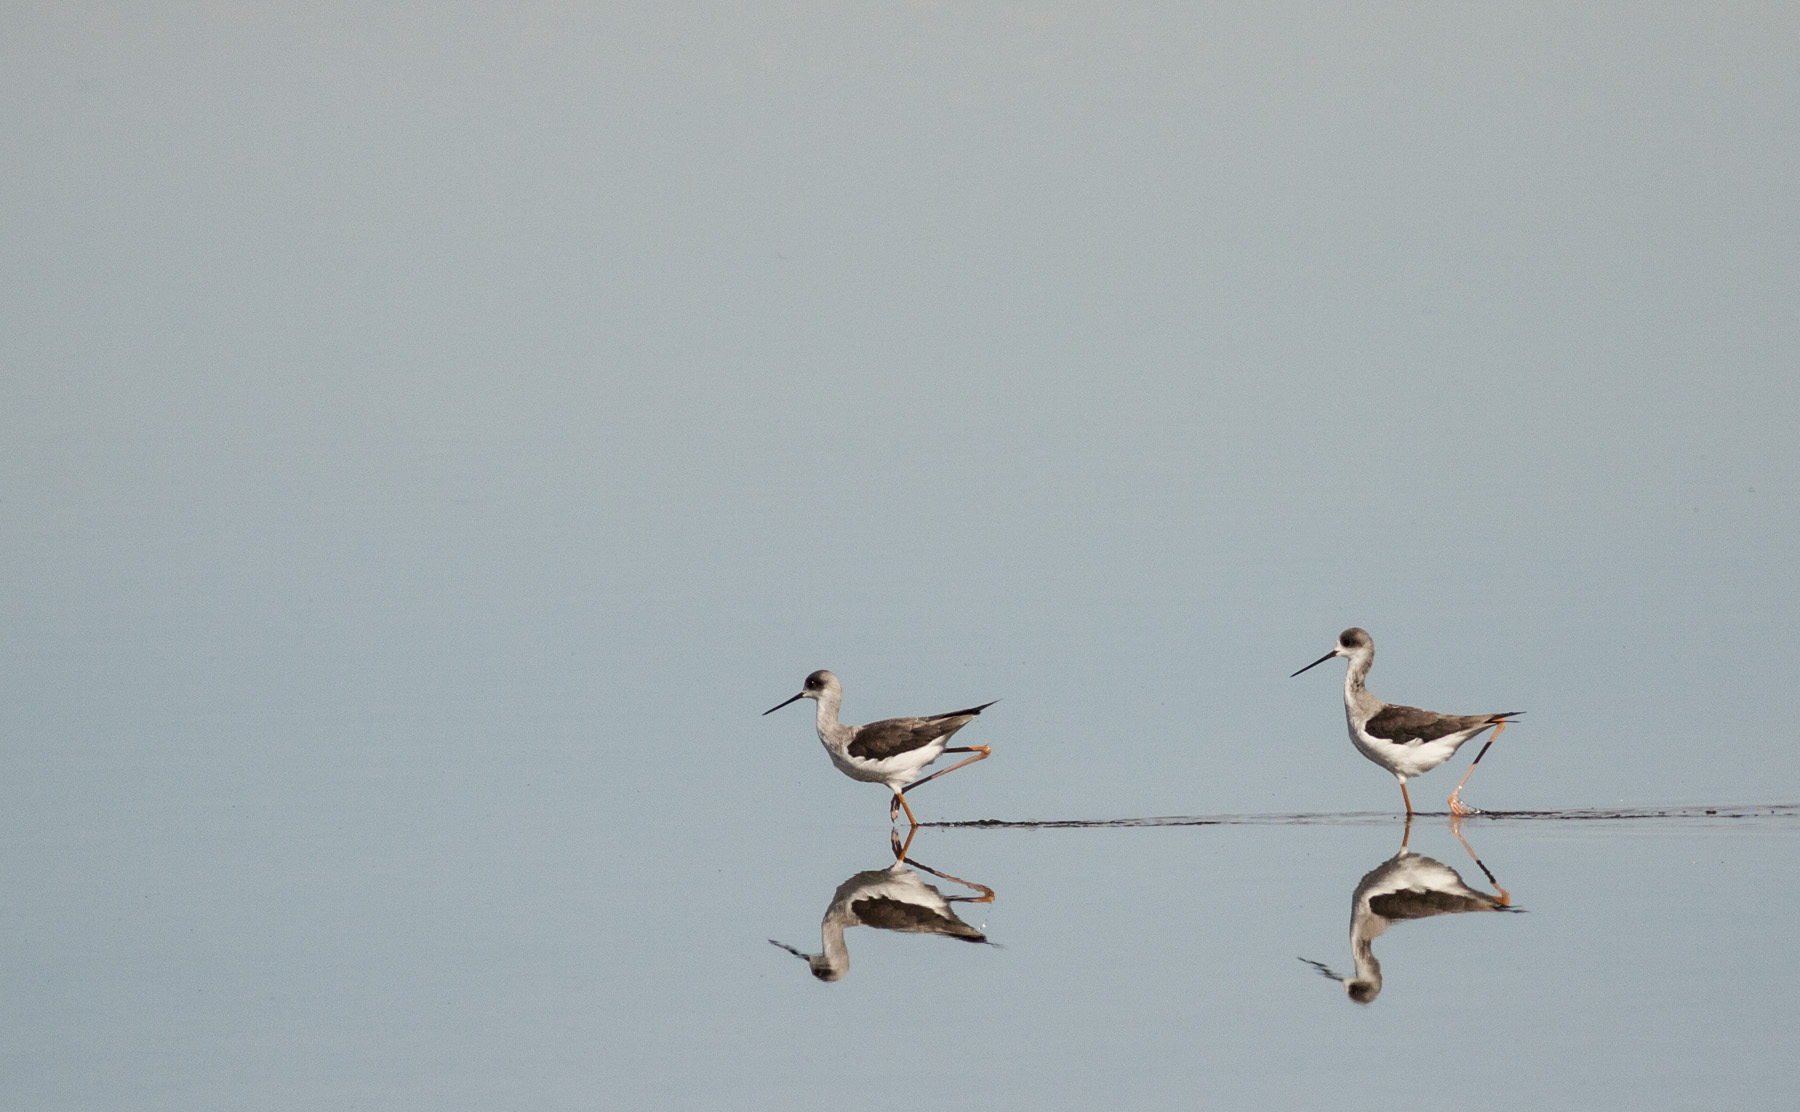 Reflection of Black Winged Stilts